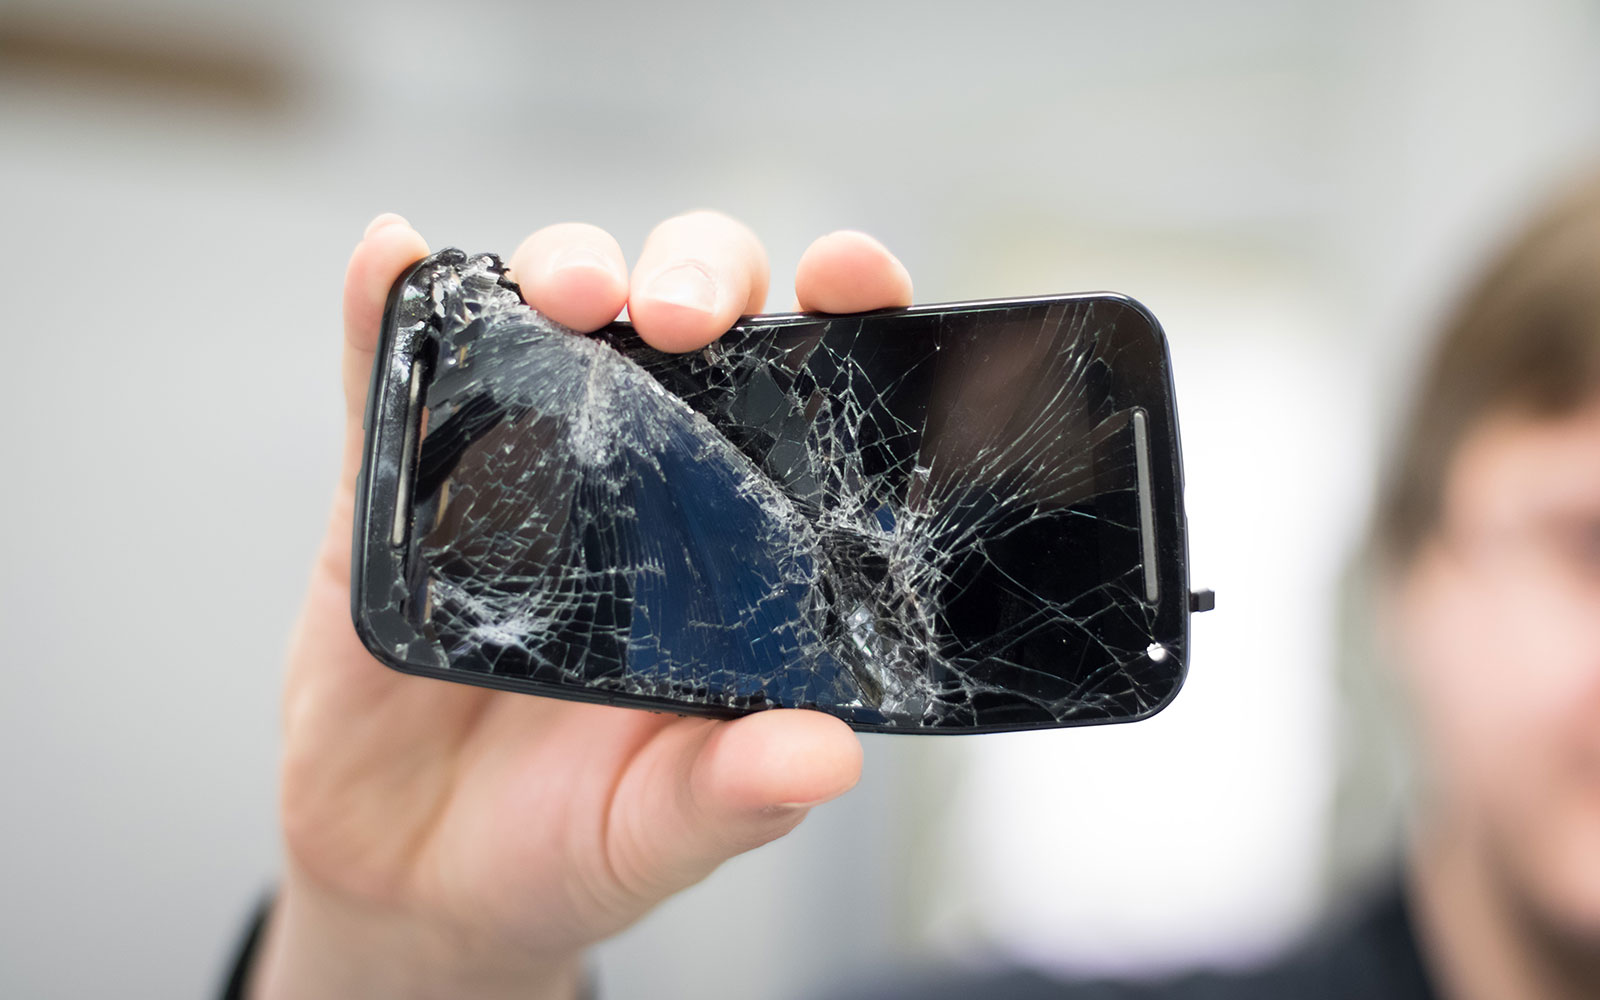 Smartphone smashed with an axe